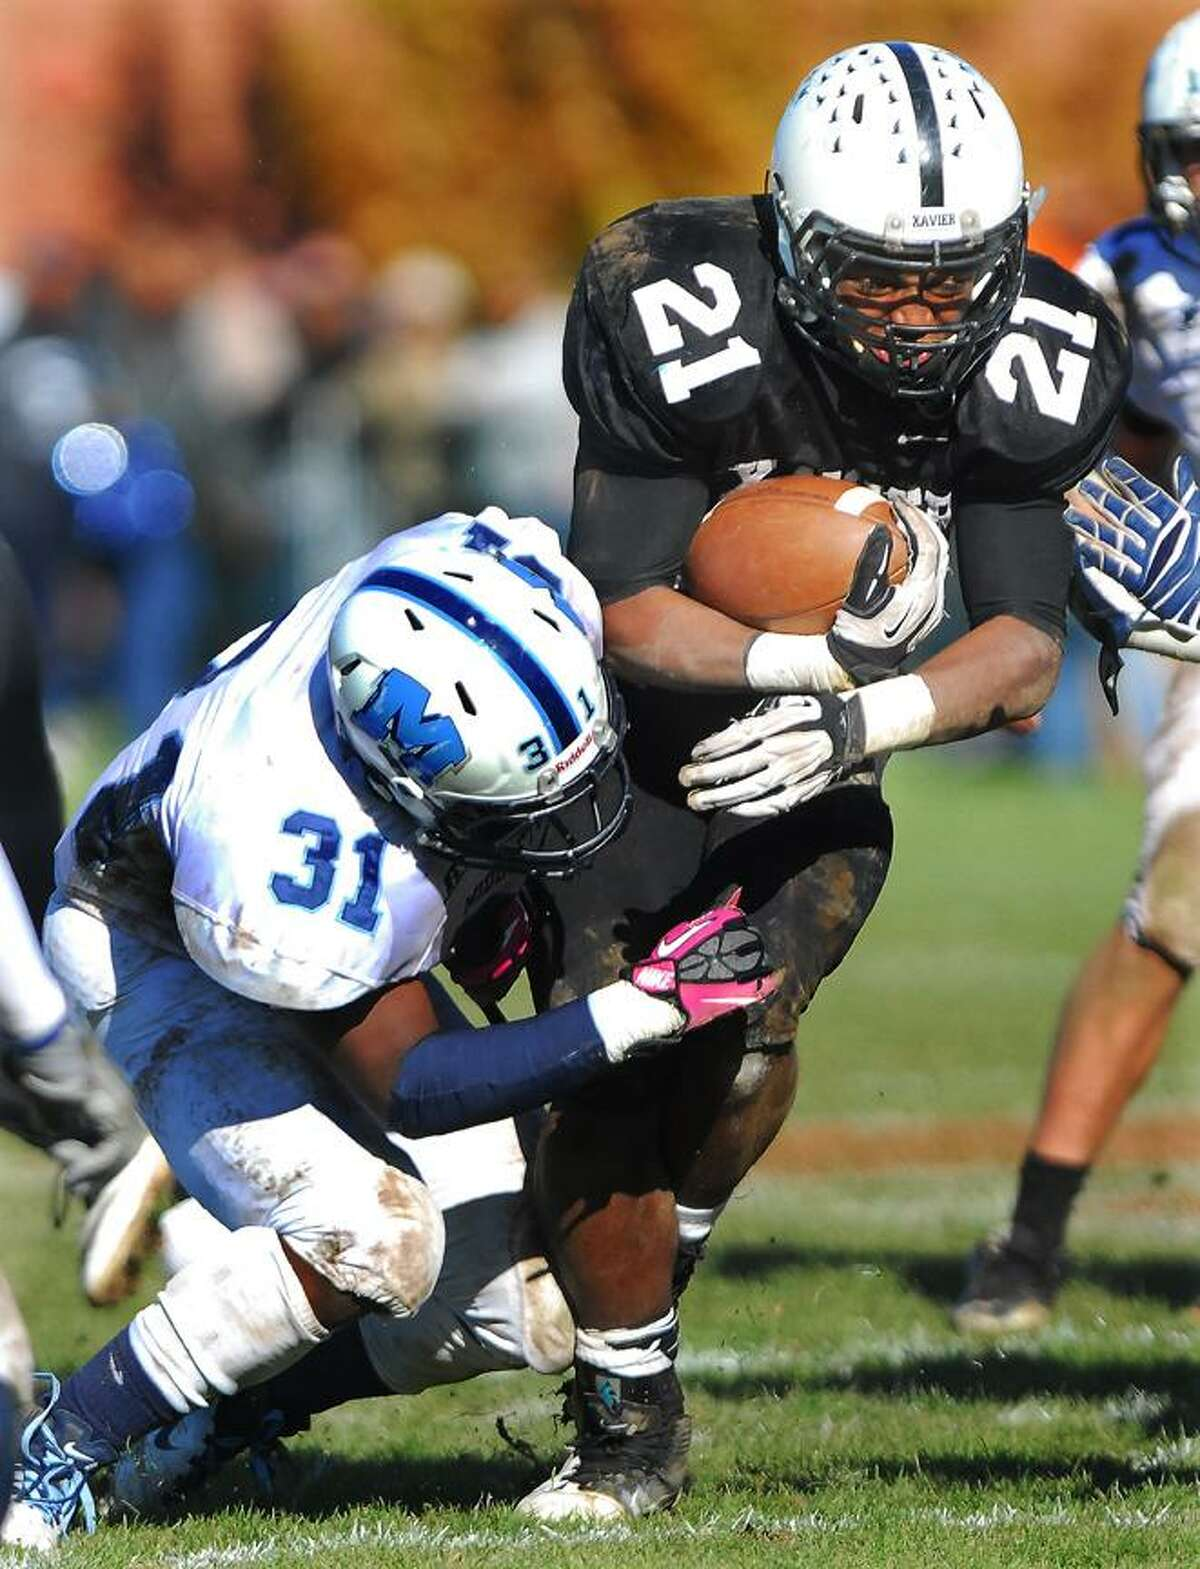 Catherine Avalone/The Middletown PressXavier senior running back DeAngelo Berry fights off Middletown senior running back Yaamal Jackson during the annual Thanksgiving Day game at Corwin Stadium at Wesleyan University Thursday morning. Xavier won, 41-